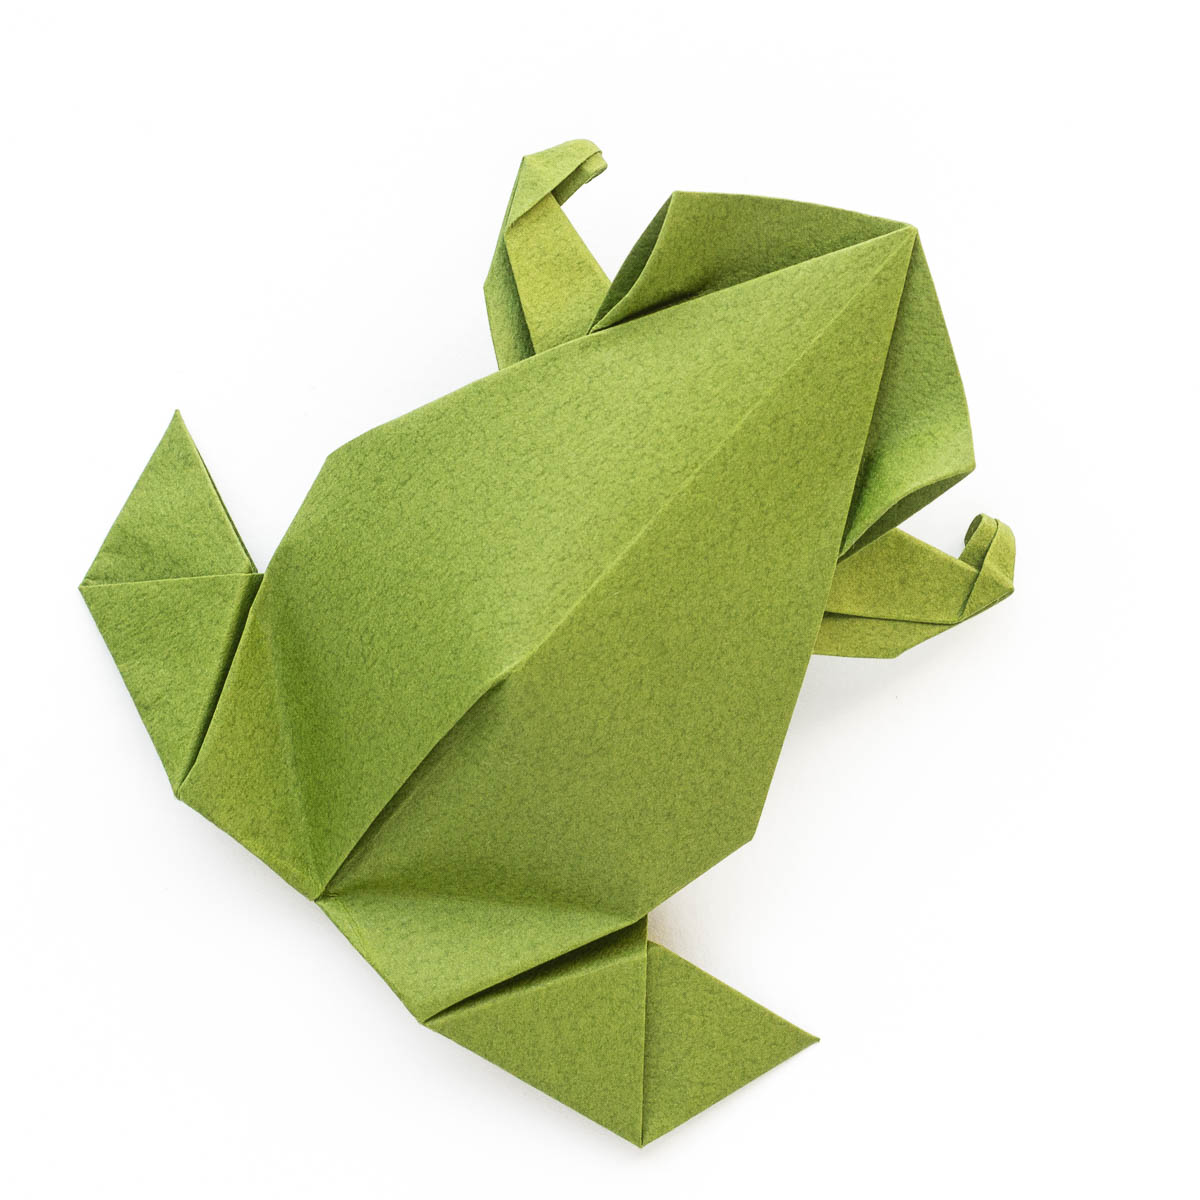 origami jumping frog diagram 2002 saturn sl2 headlight wiring pre columbian style by leyla torres go